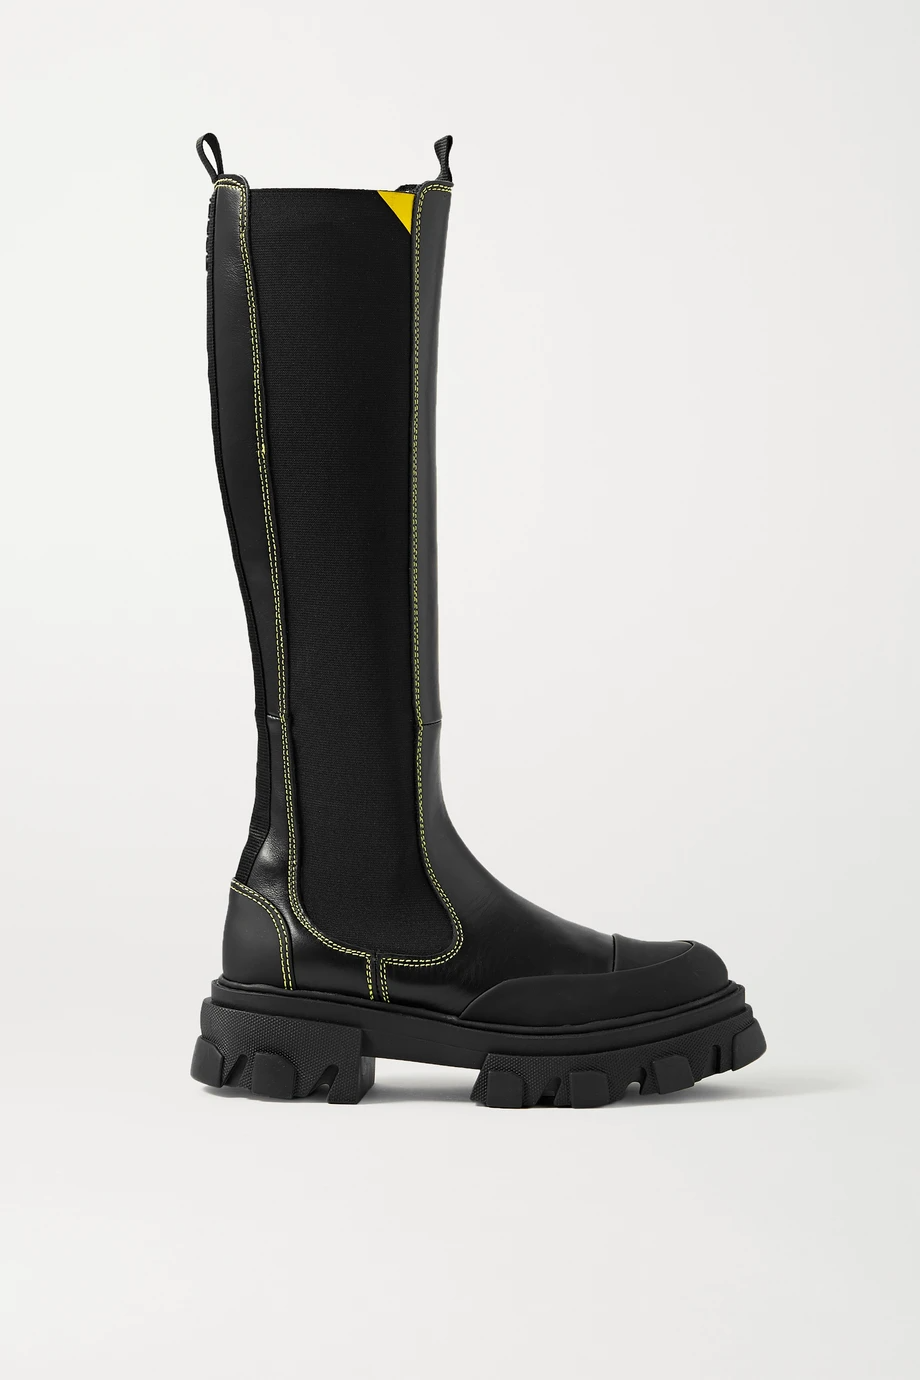 "<br><br><strong>Ganni</strong> Rubber-Trimmed Leather Chelsea Knee Boots, $, available at <a href=""https://go.skimresources.com/?id=30283X879131&url=https%3A%2F%2Fwww.net-a-porter.com%2Fen-us%2Fshop%2Fproduct%2Fganni%2Frubber-trimmed-leather-chelsea-knee-boots%2F1272622"" rel=""nofollow noopener"" target=""_blank"" data-ylk=""slk:Net-A-Porter"" class=""link rapid-noclick-resp"">Net-A-Porter</a>"